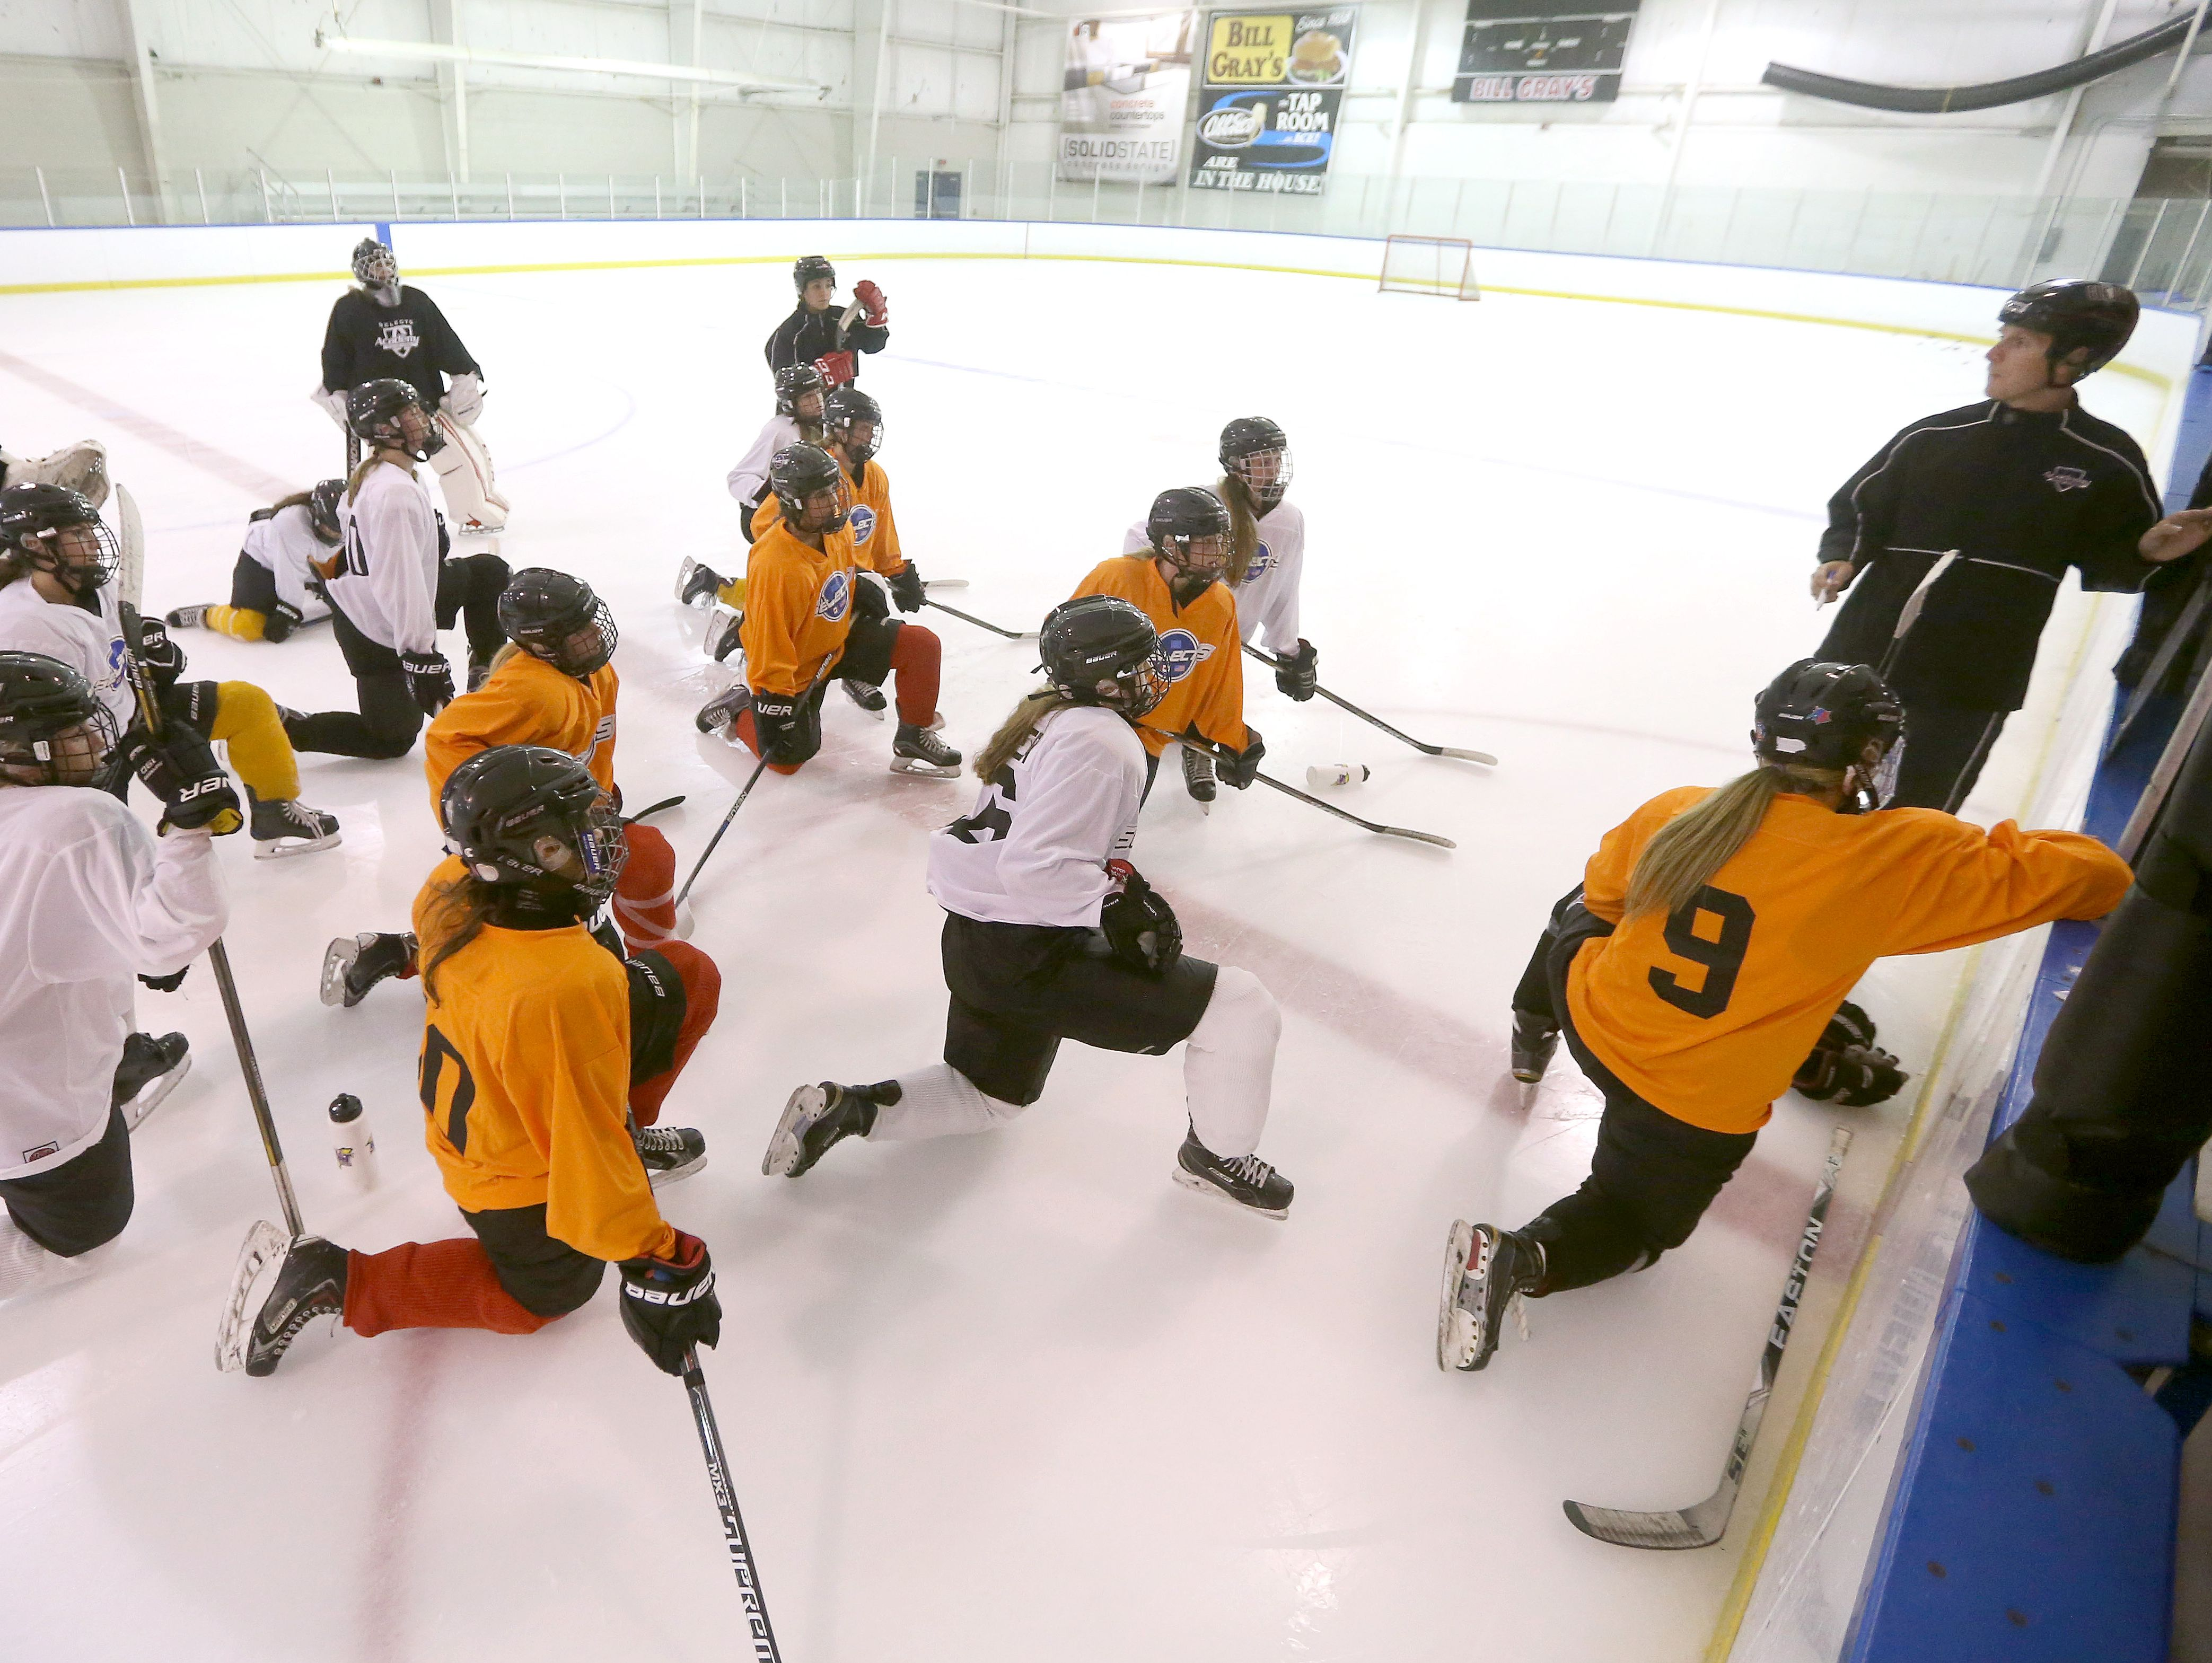 Bishop Kearney head coach Chris Baudo explains a drill to his girls hockey team during a recent practice at the Bill Gray's Regional Iceplex. The first-year program is off to a fast start.